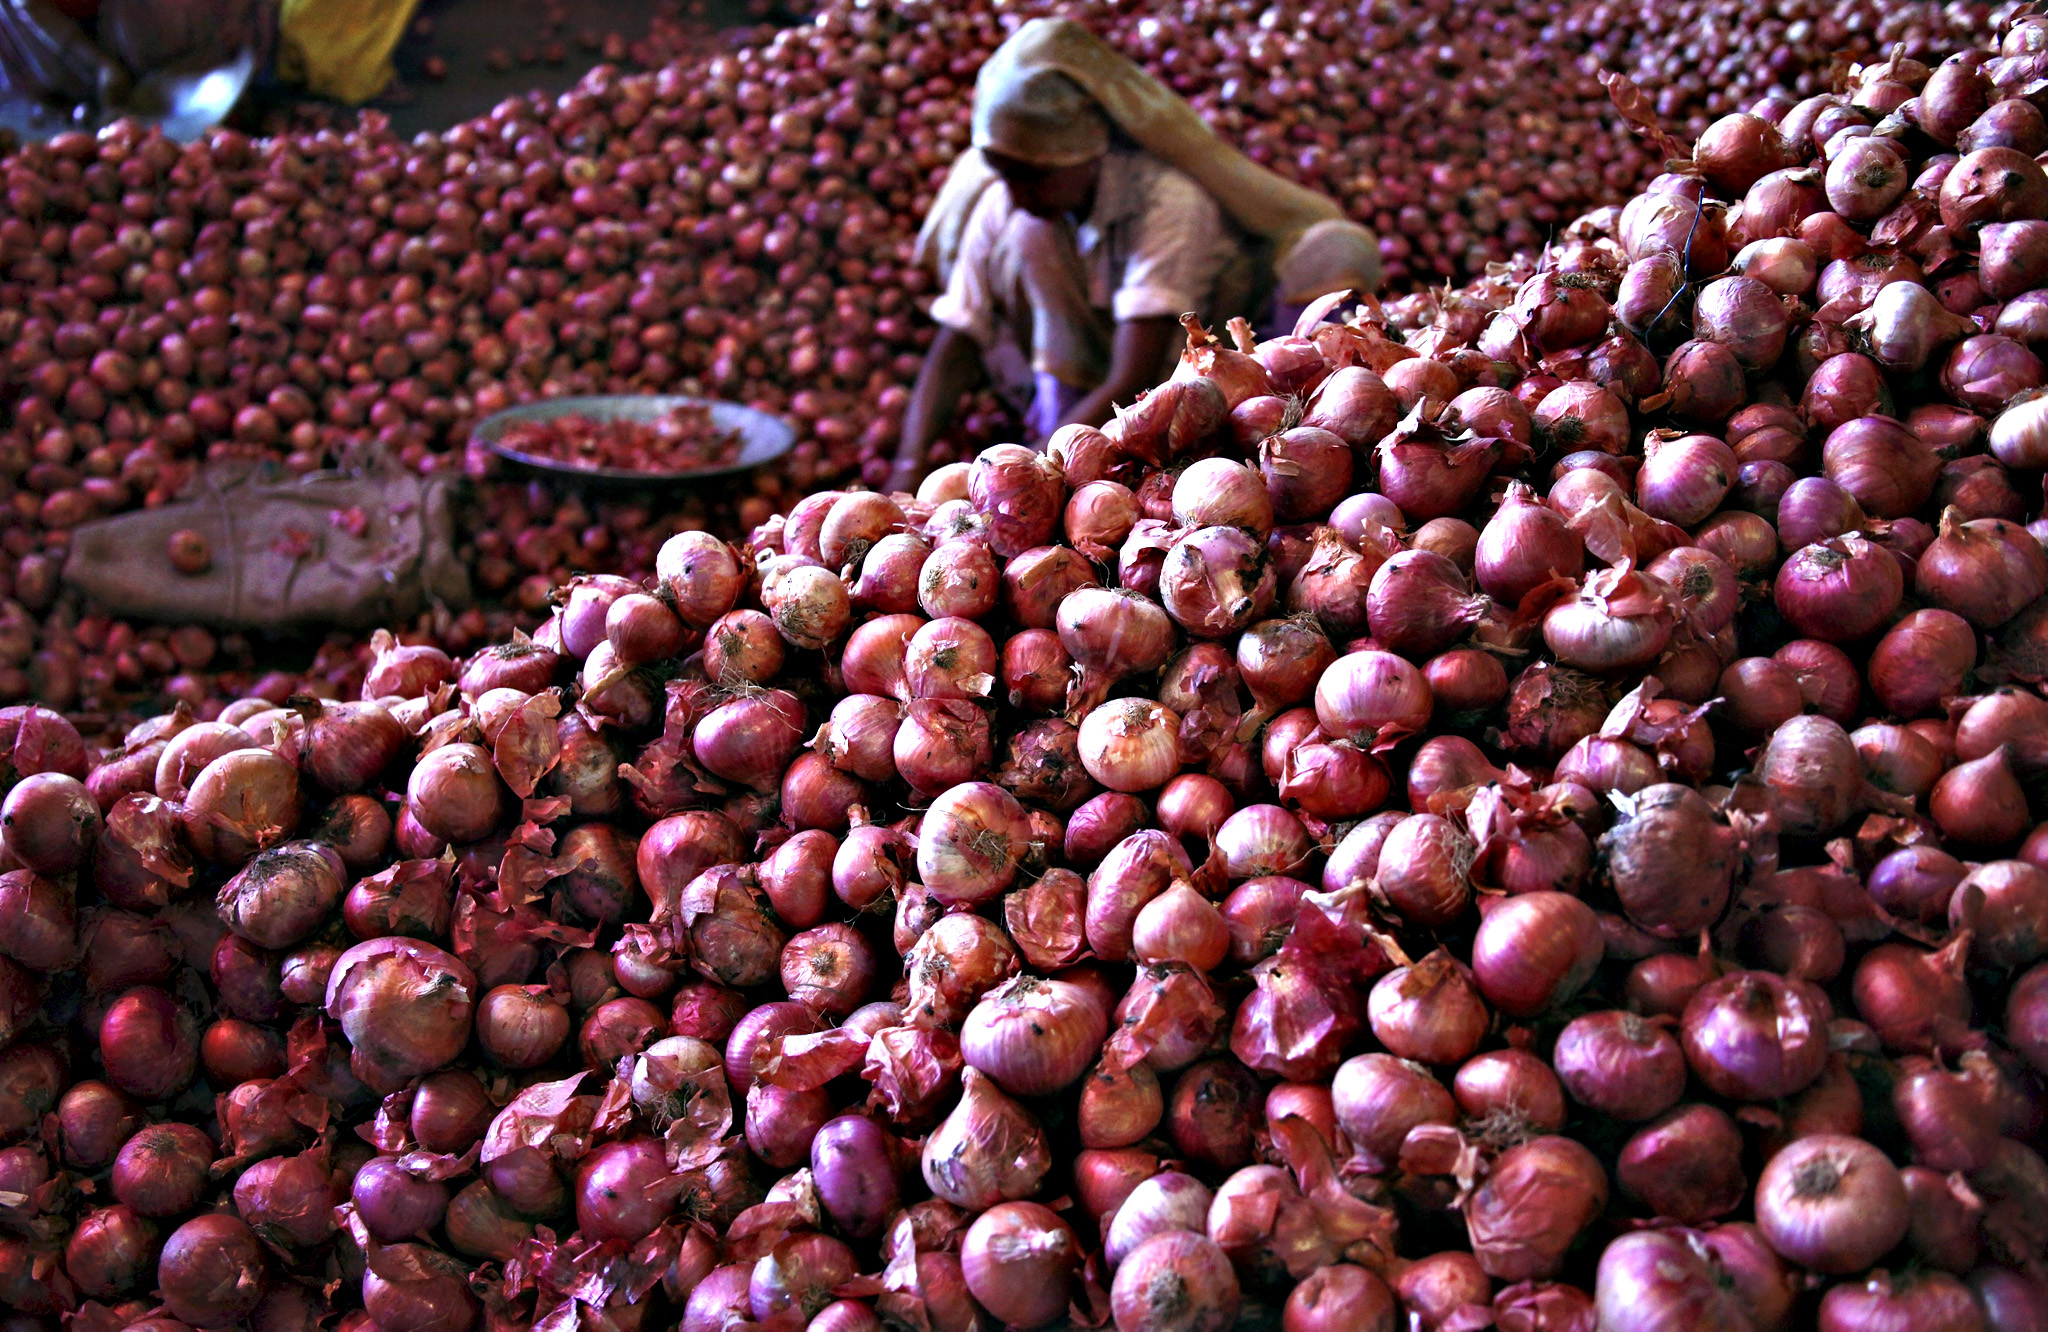 A worker sorts onions at a wholesale vegetable market in Chandigarh, India, July 24, 2015. The price of Indian onions, a staple that has sparked protests in the past and toppled state governments, has jumped to its highest in nearly two years and could fuel food inflation as scant rain delays plantings